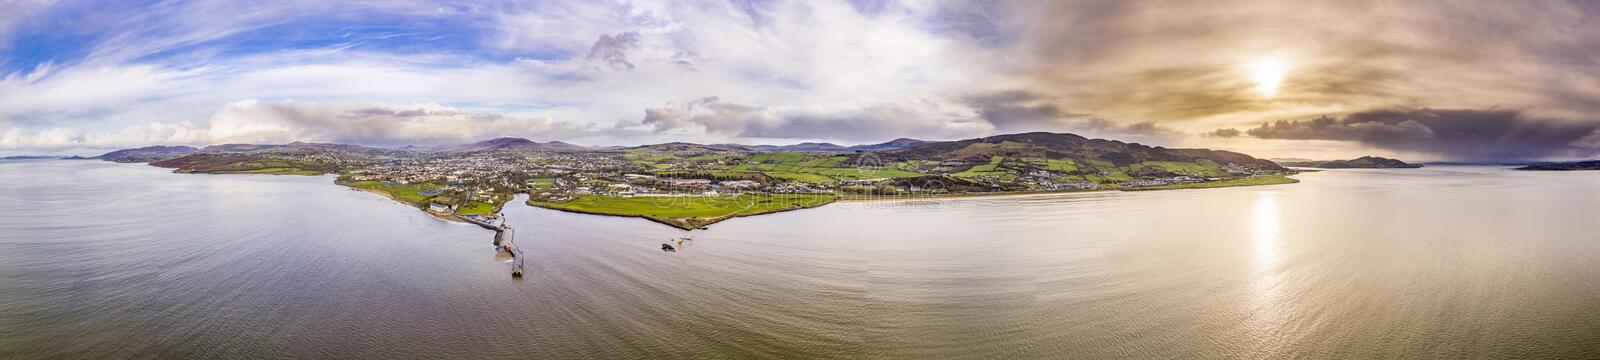 Aerial view of the town Buncrana in County Donegal - Republic of Ireland.  stock images